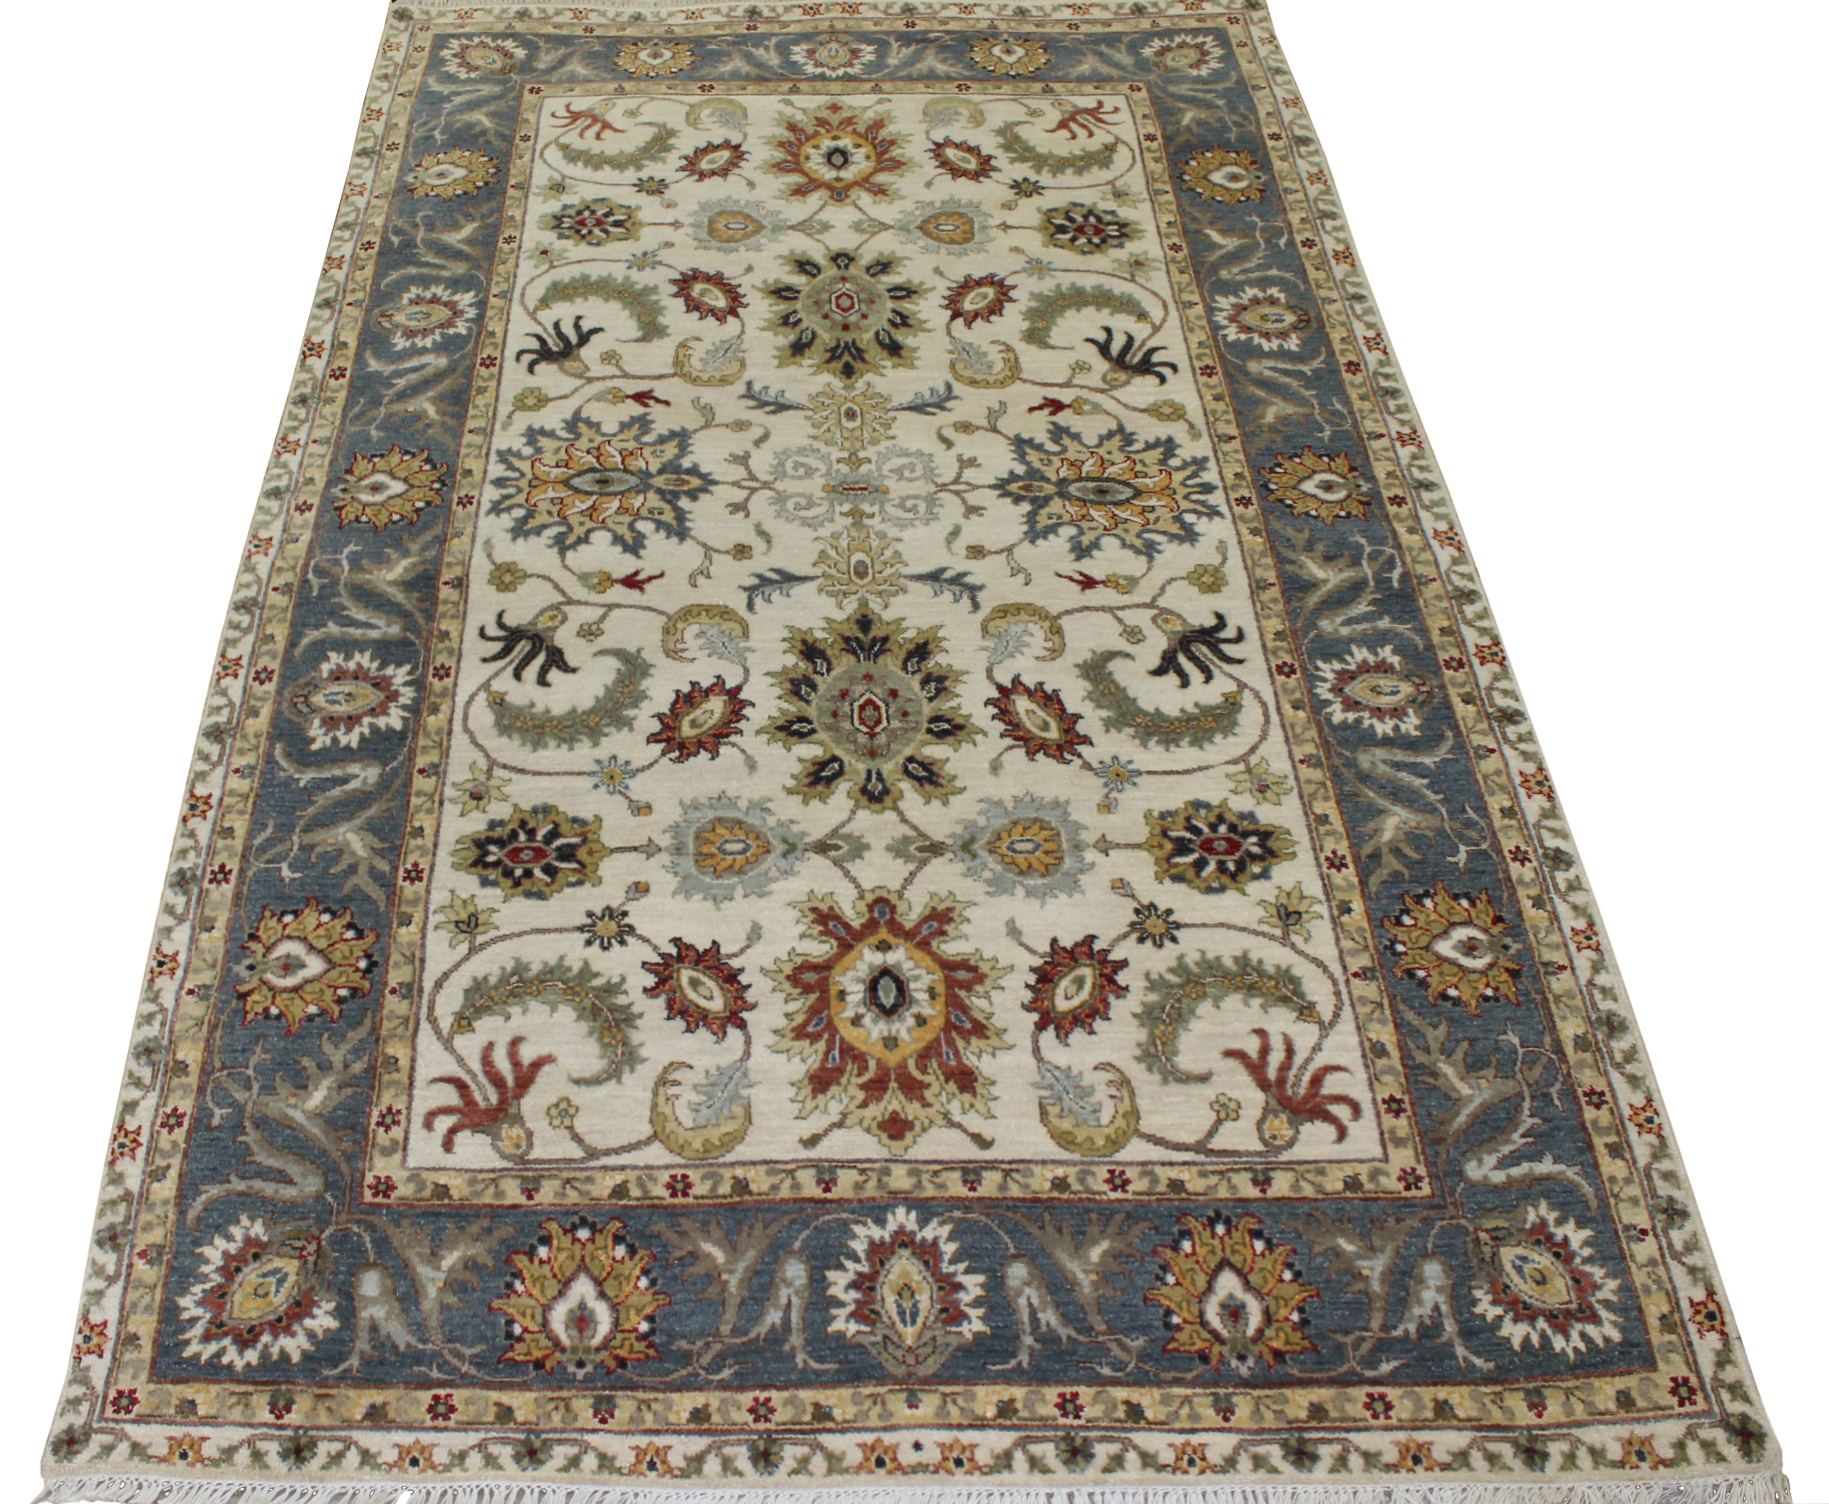 5x7/8 Traditional Hand Knotted Wool Area Rug - MR023828